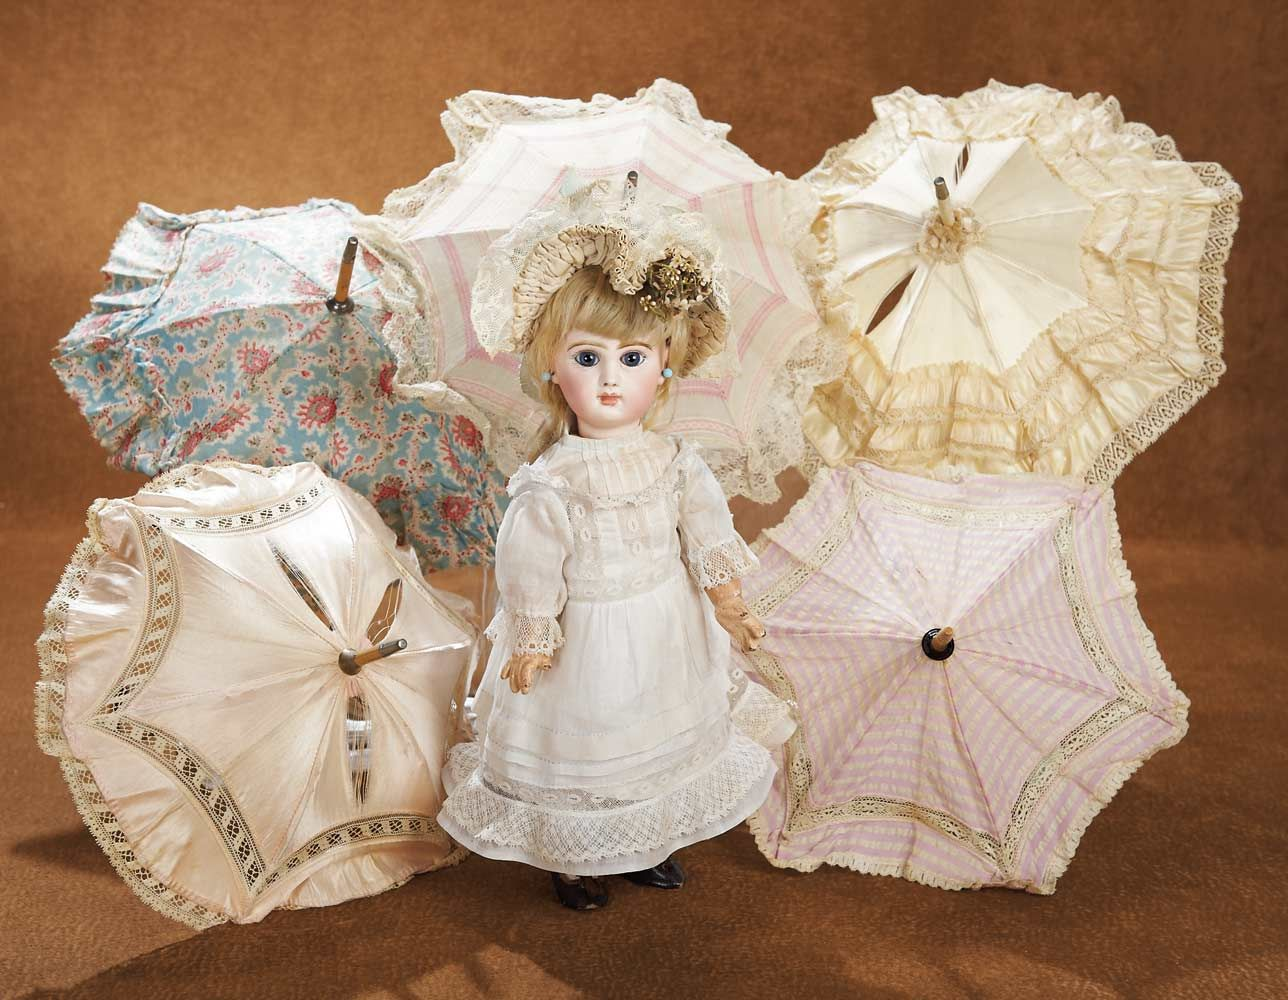 Upon Arriving Home: 194 Six Antique Doll Parasols with Original Covers